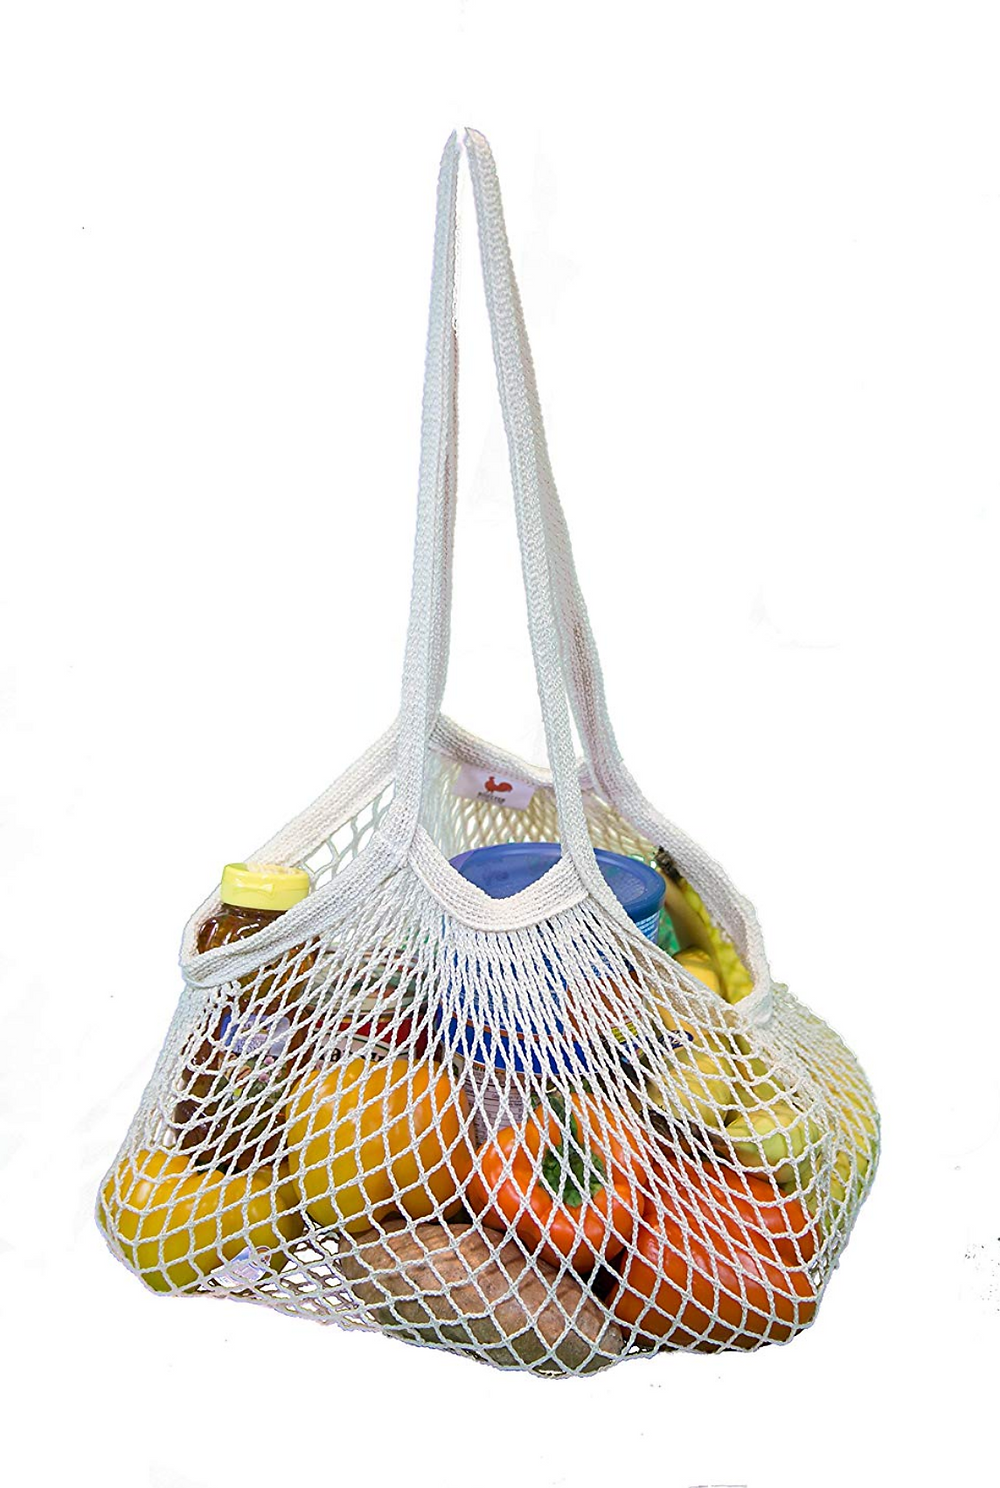 Mesh Grocery Tote Bag filled with food